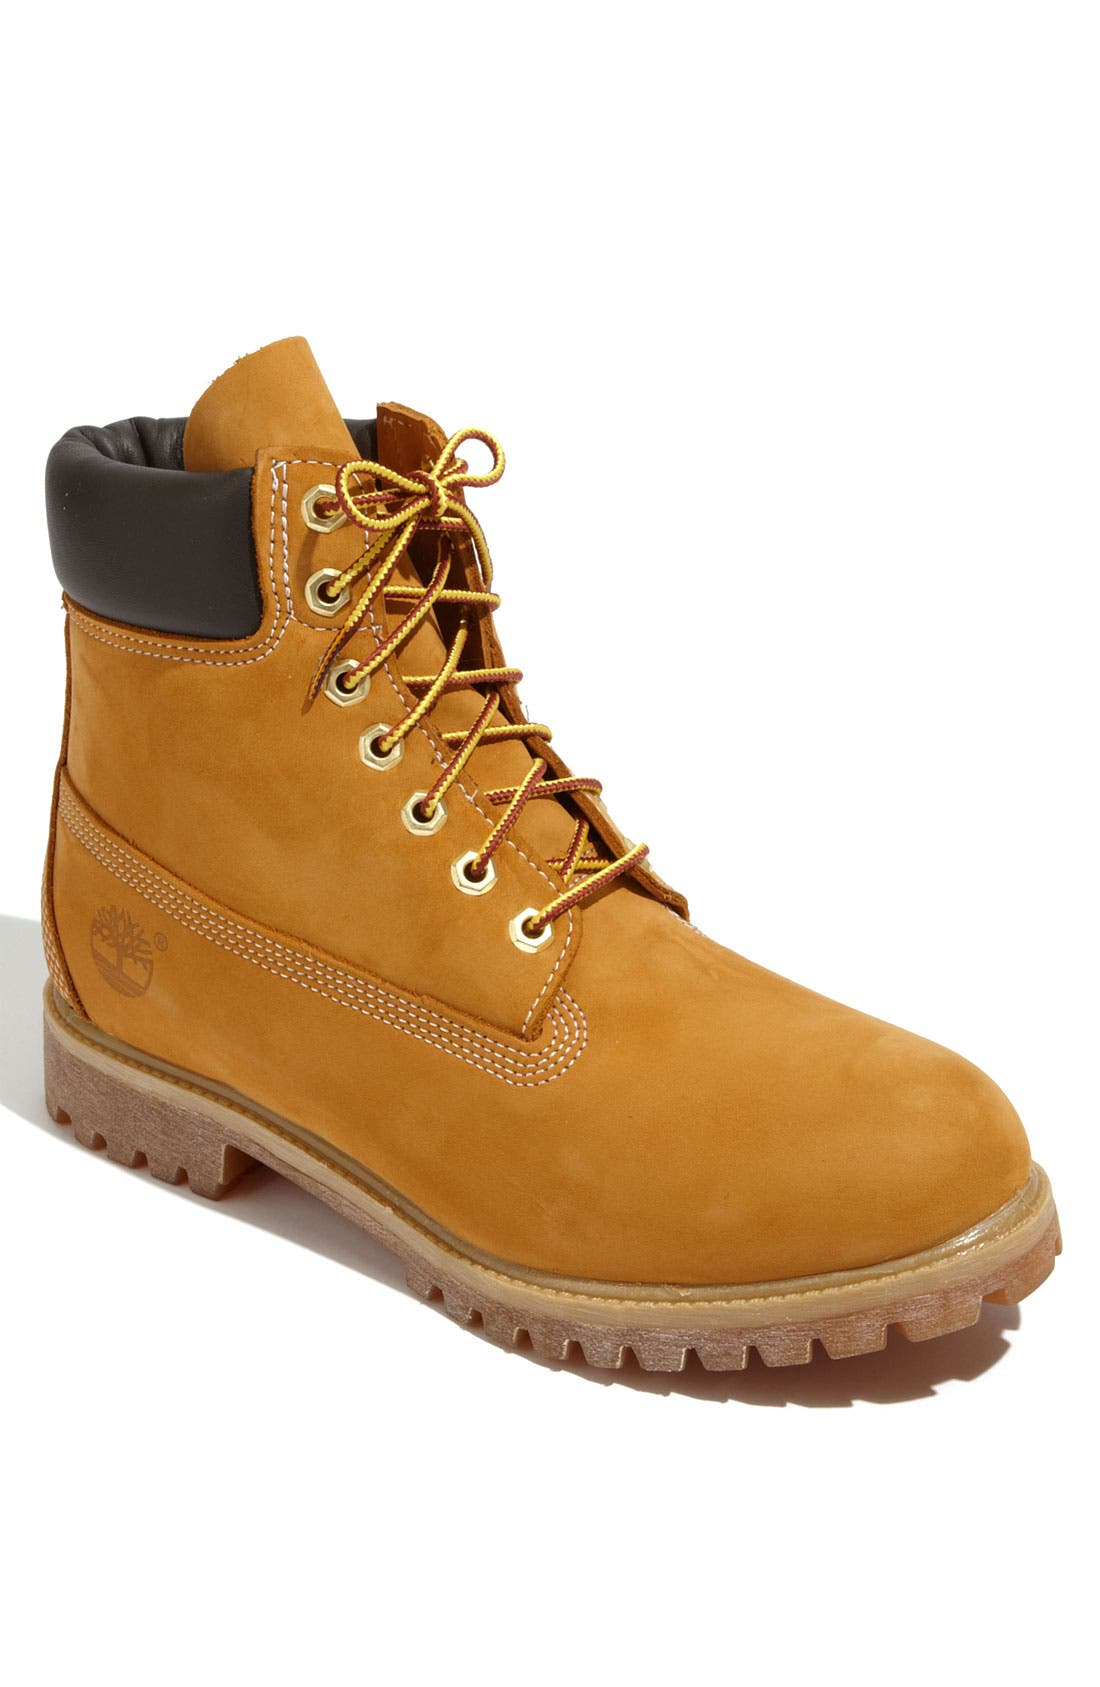 TIMBERLAND Six Inch Classic Boots Series - Premium Boot